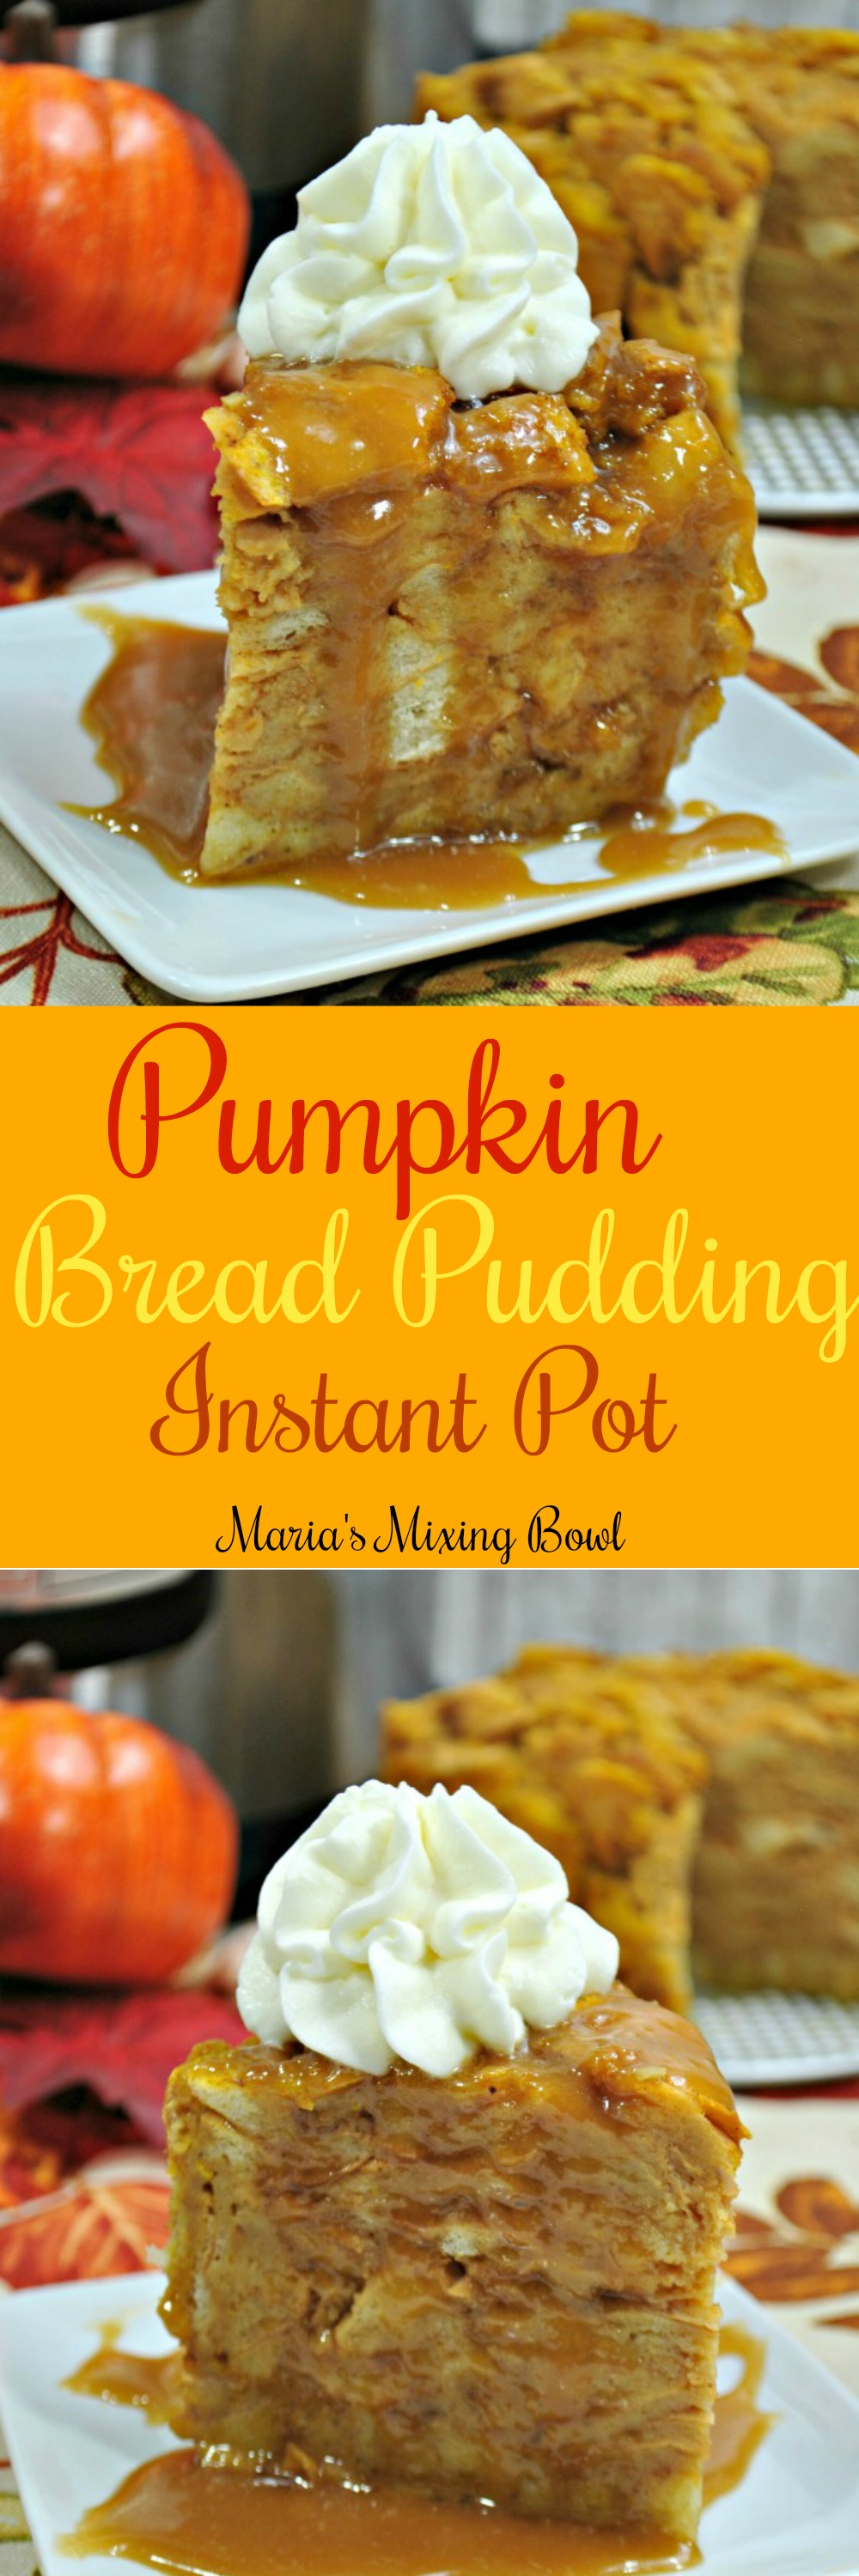 Pumpkin Bread Pudding Recipe -  Instant Pot pumpkin bread Pudding is everything you love about a pumpkin and bread pudding. Just the right amount of sweetness, moist, rich, and full of pumpkin spice flavor!